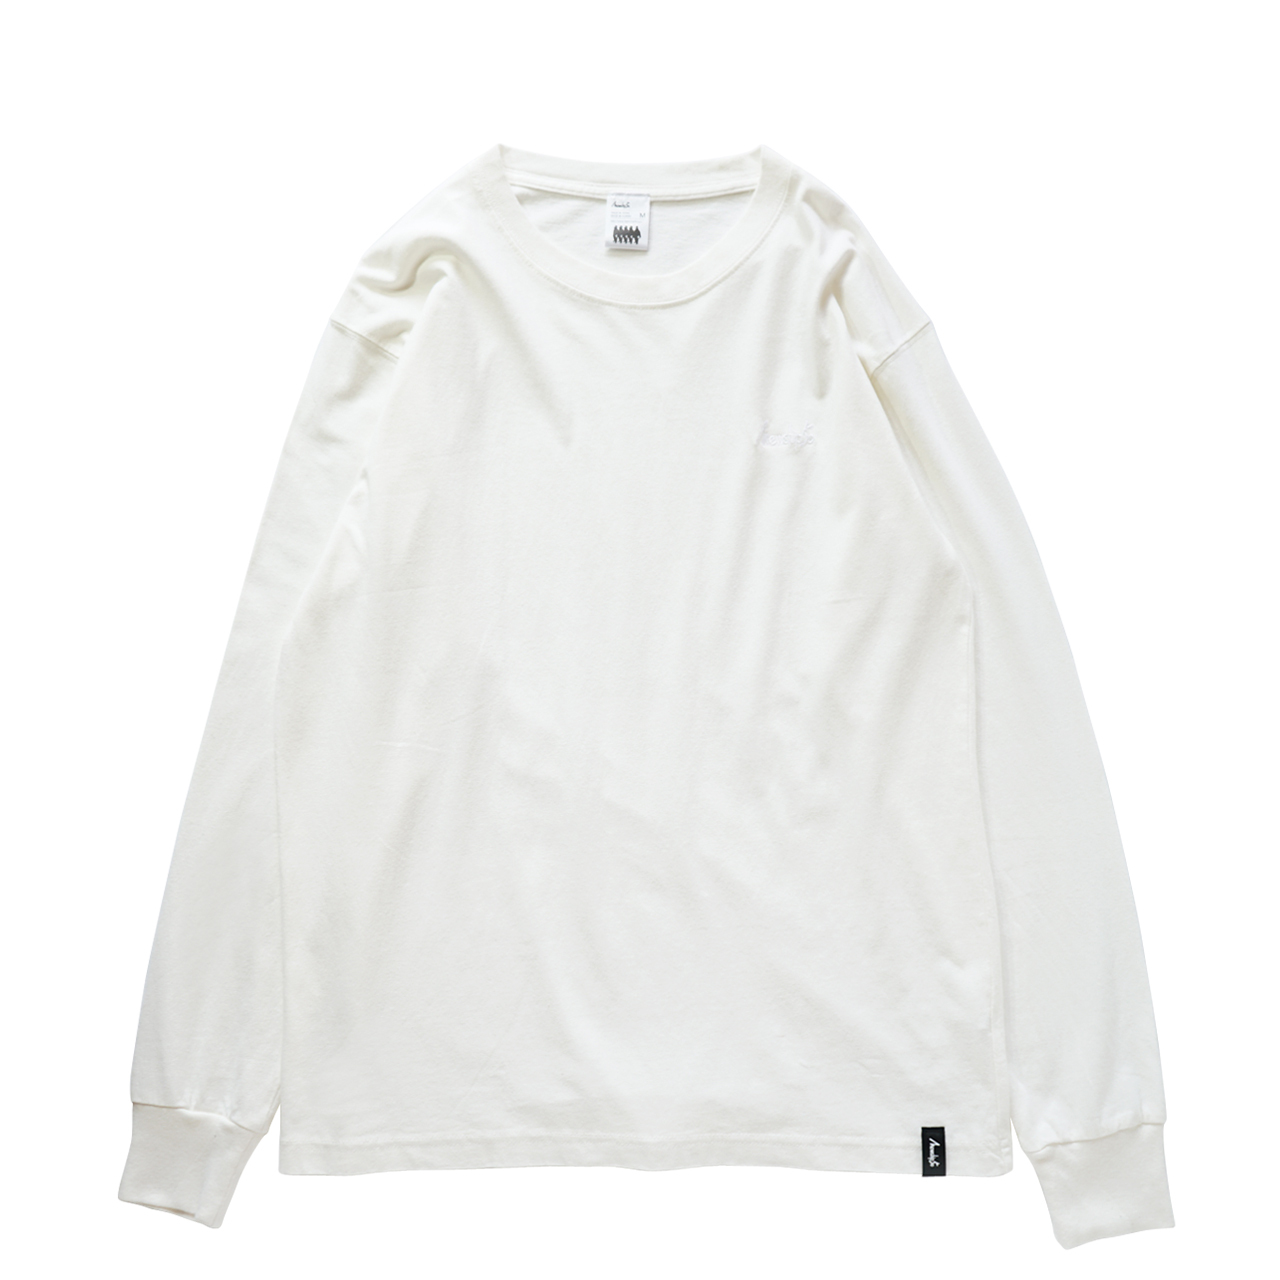 BASIC LOGO 2019 L/S CT <Natural×White> - 画像1